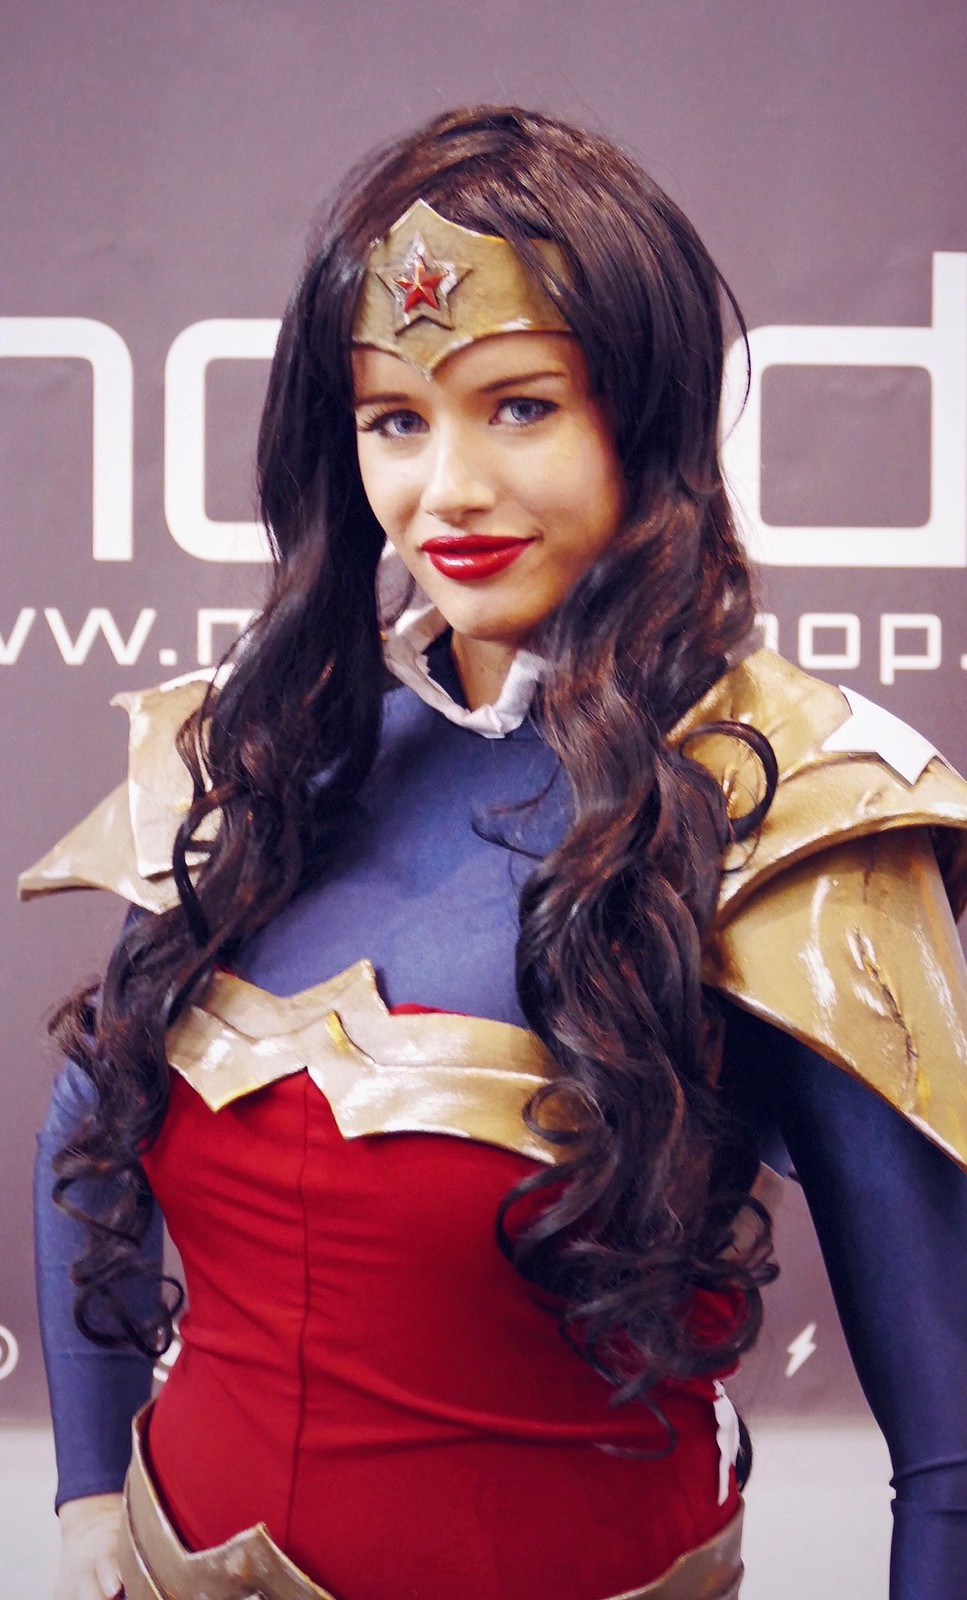 Lexi Farron Strife as Wonder Woman